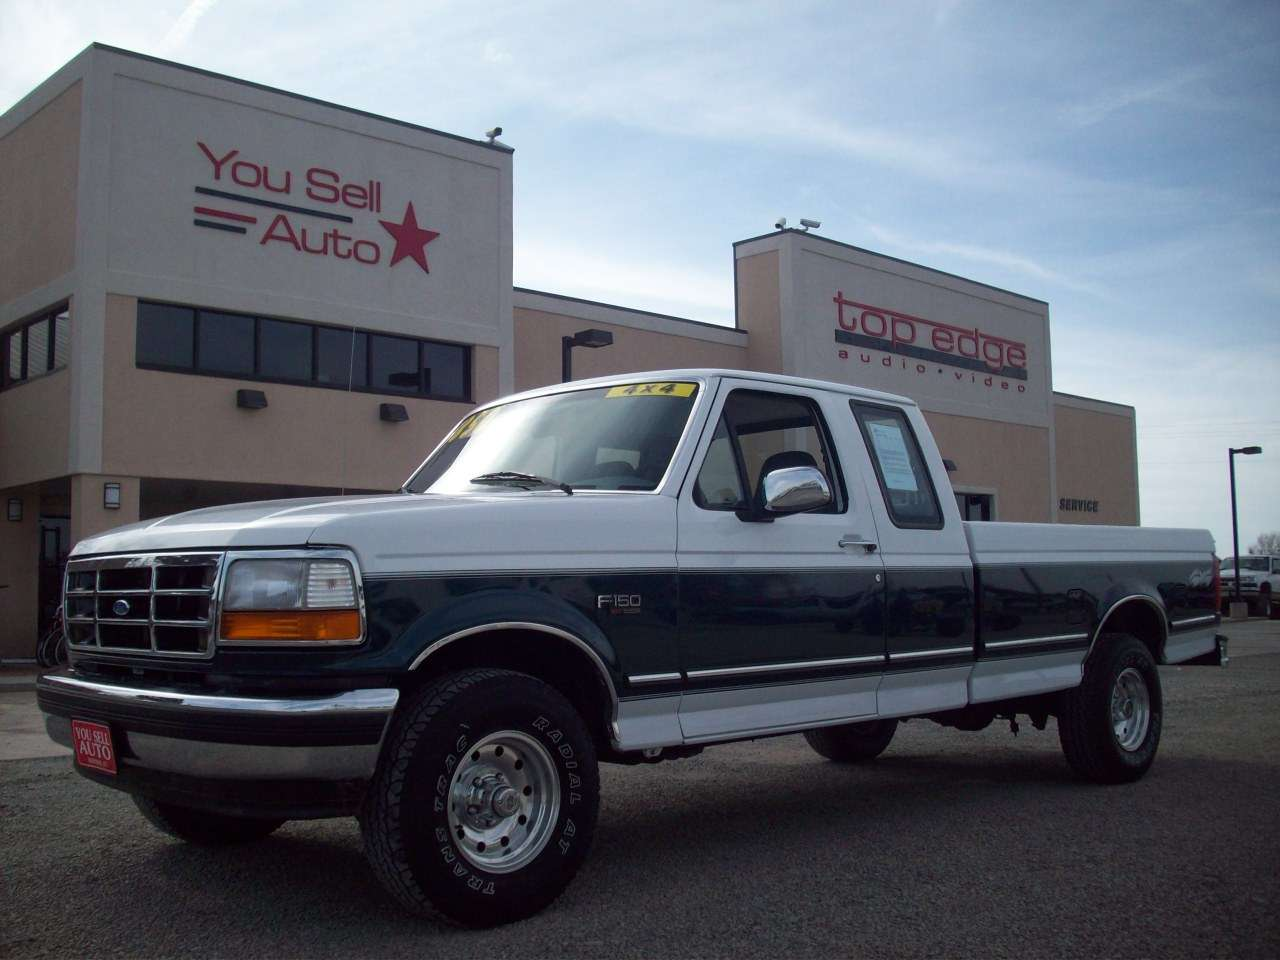 1995 ford f150 xlt 4x4 extended cab pickup sold  [ 1280 x 960 Pixel ]